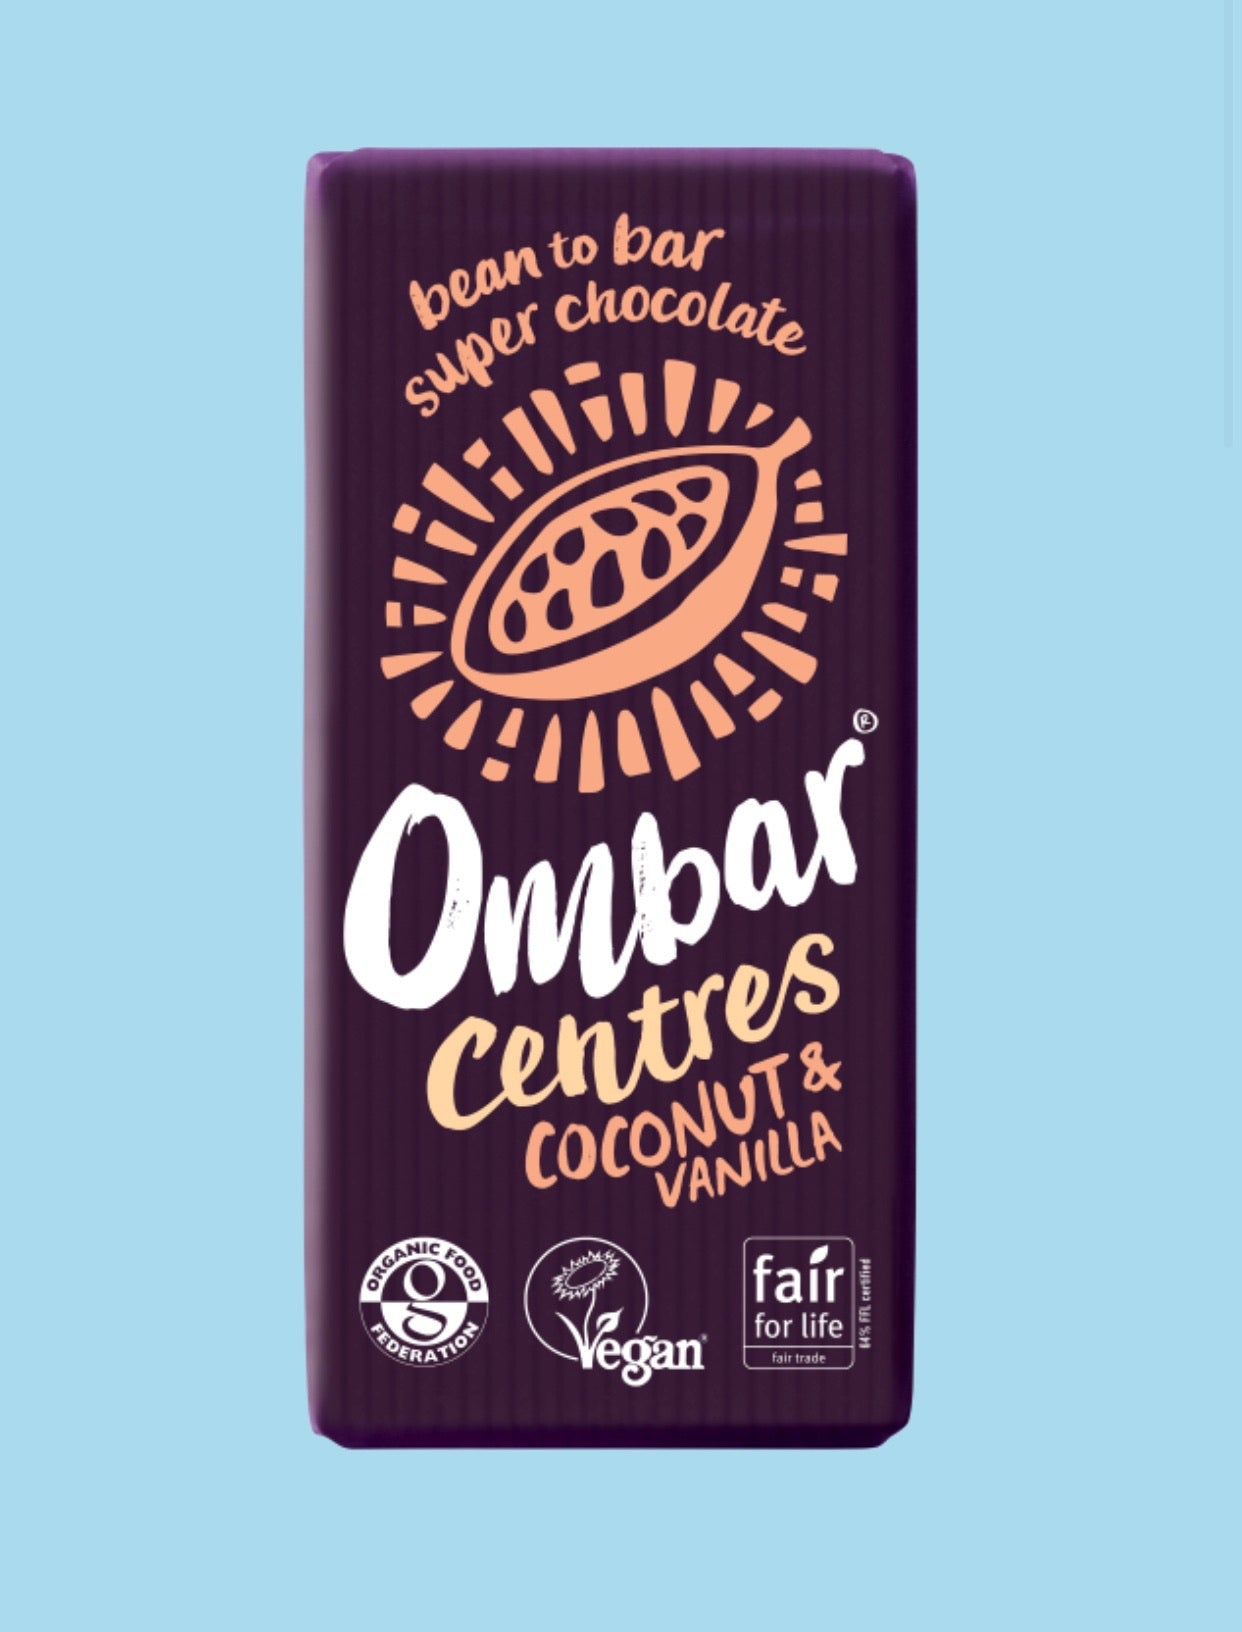 Coconut & Vanilla Centre Bar / Vegan Chocolate, Ombar (70g)